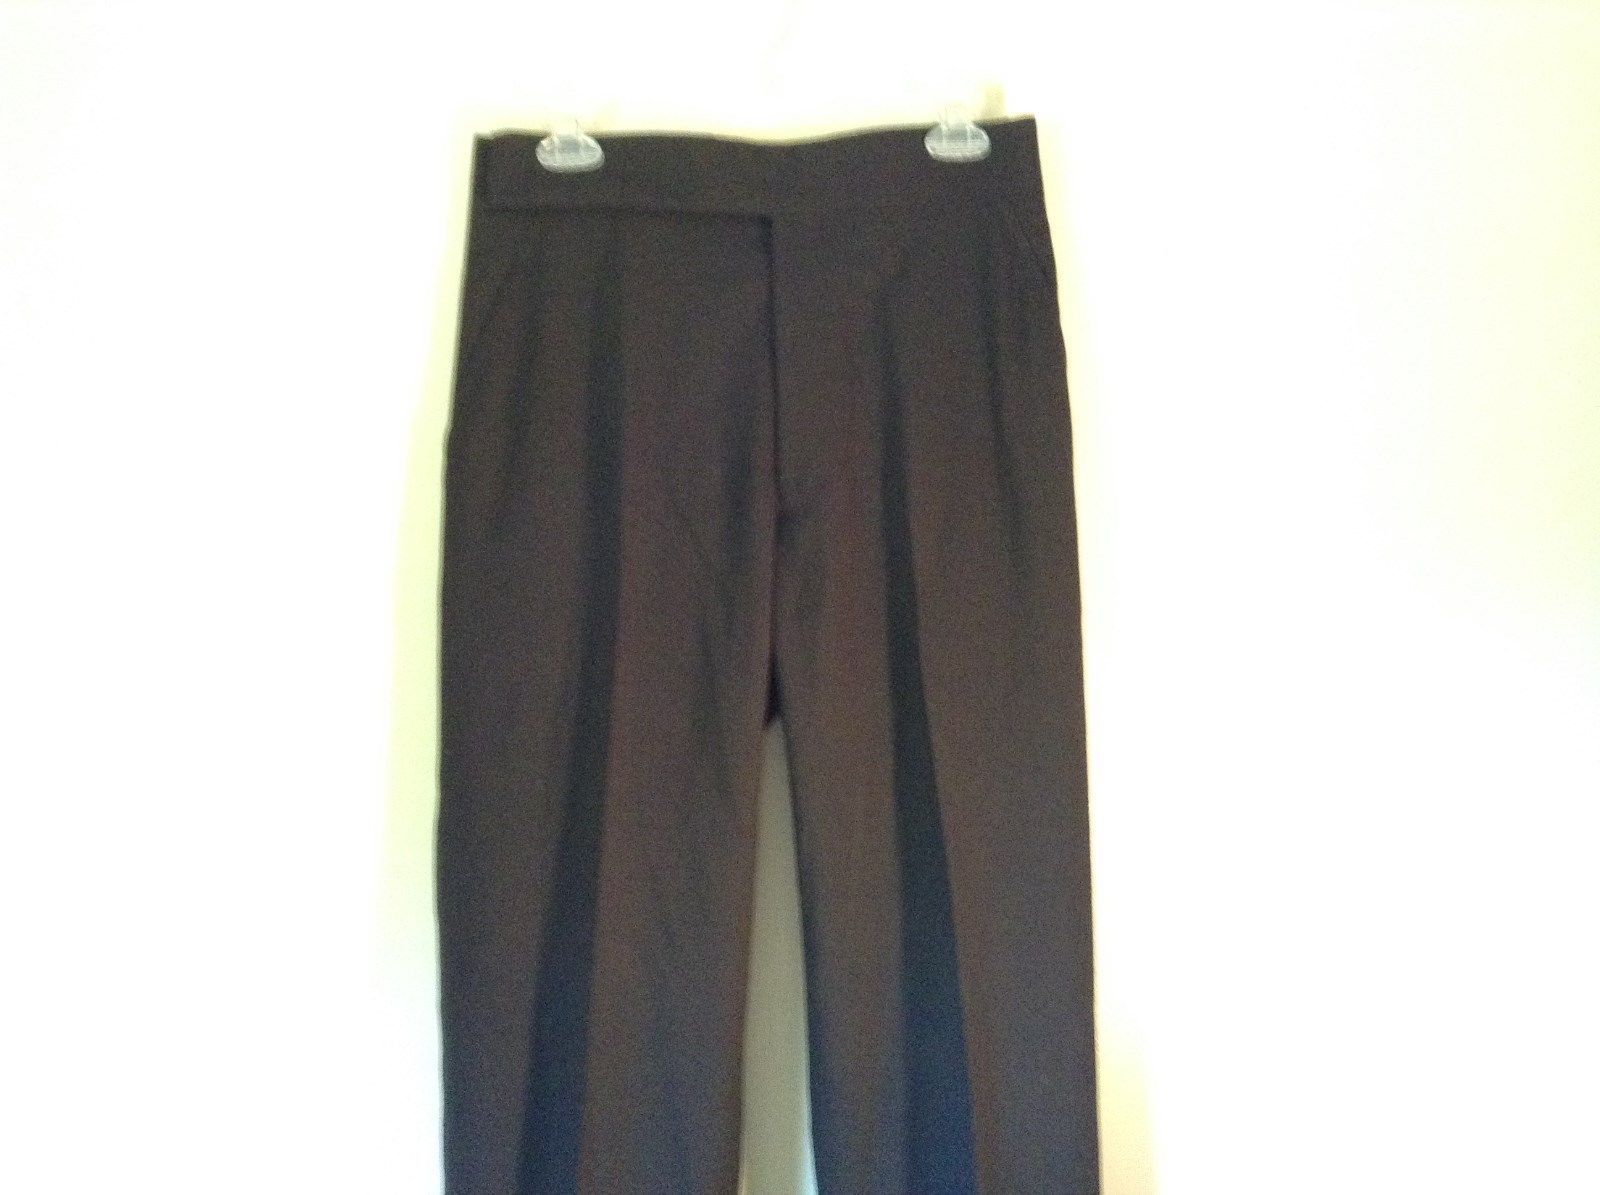 Black Dress Pants No Tags Excellent Condition Measurements Below